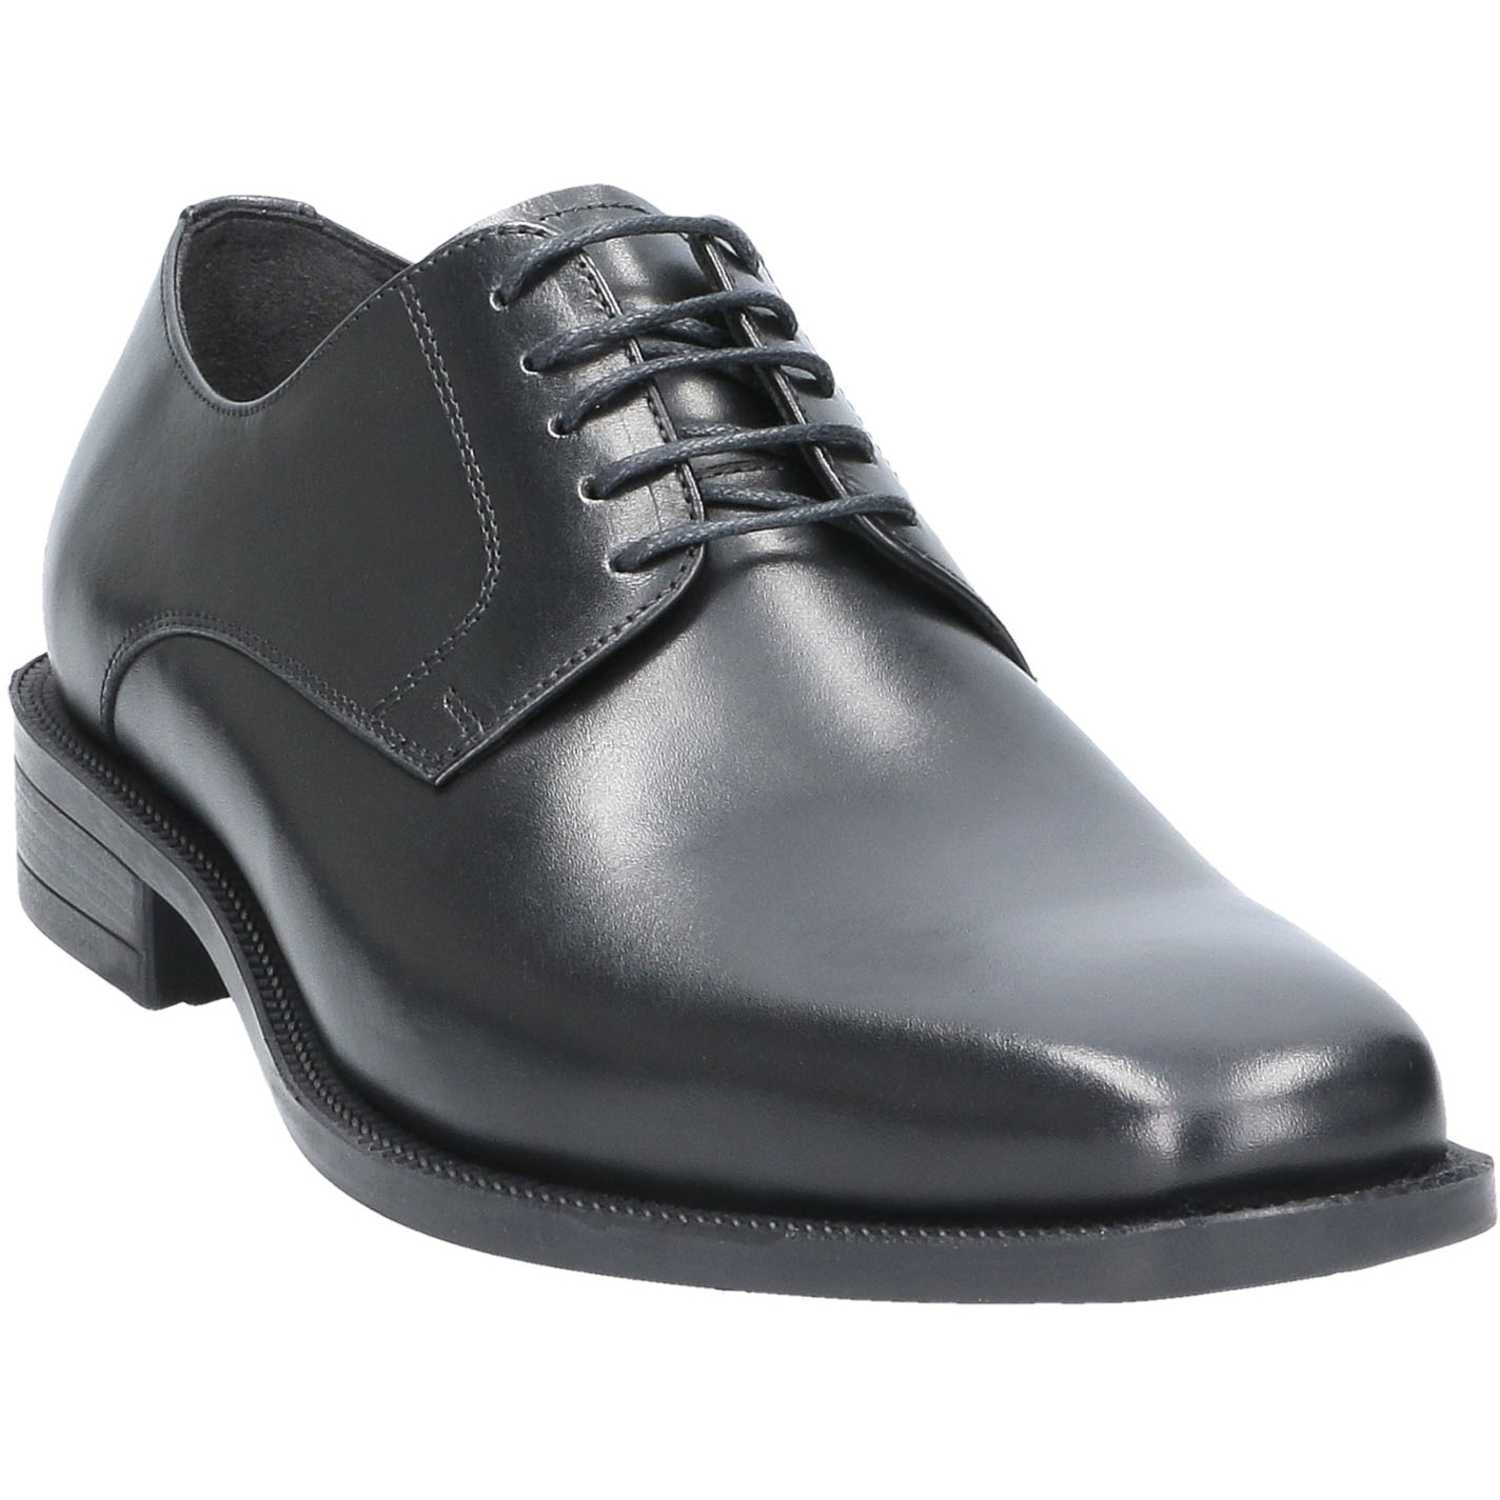 GUANTE Baltimore Negro Oxfords